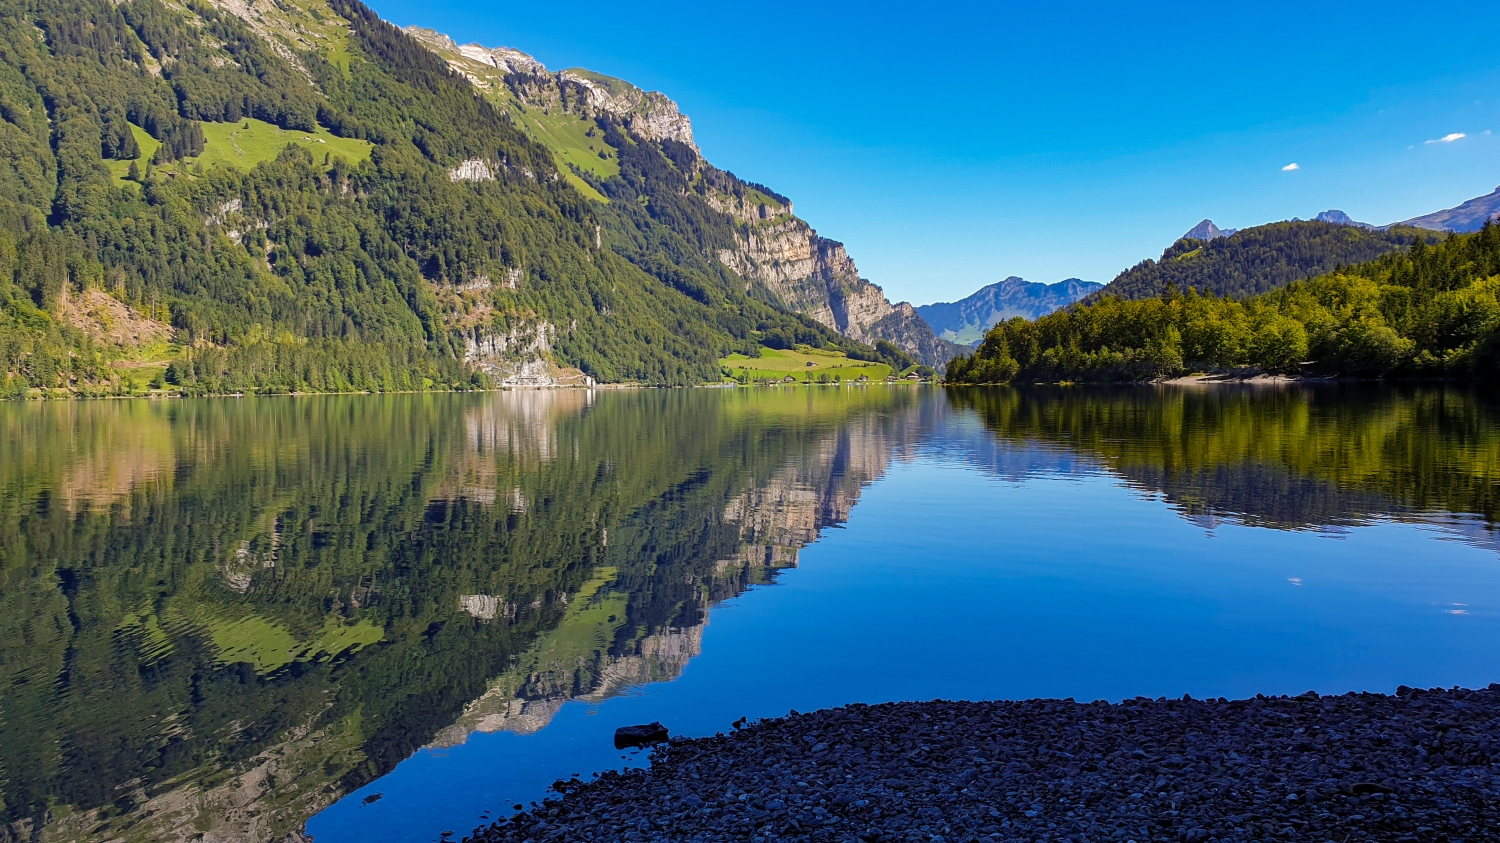 Southern bank of the Klöntalersee Lake, in Glarus, Switzerland